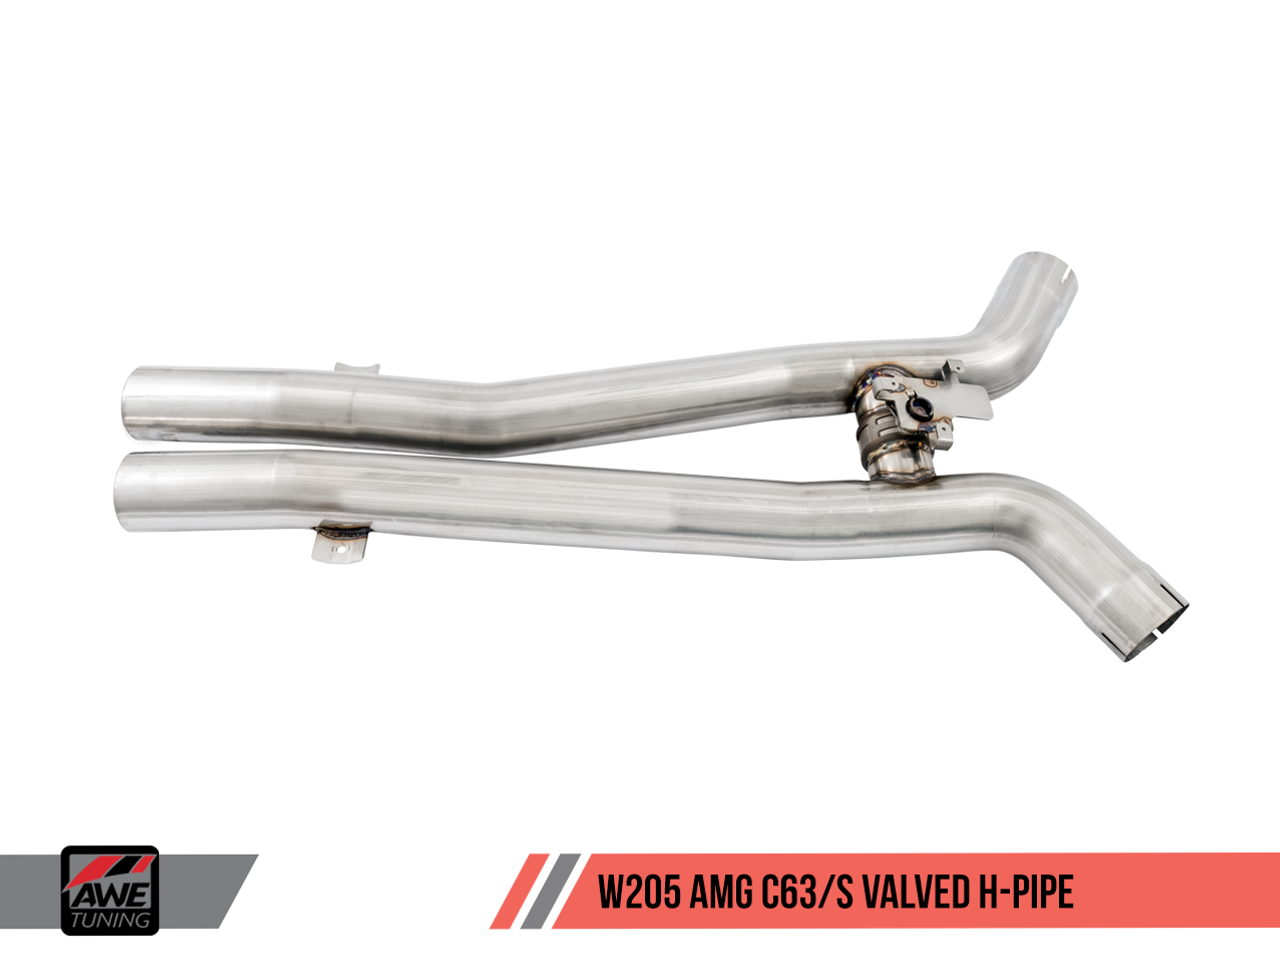 AWE Tuning Mercedes-Benz W205 AMG C63 / C63S SwitchPath Exhaust System